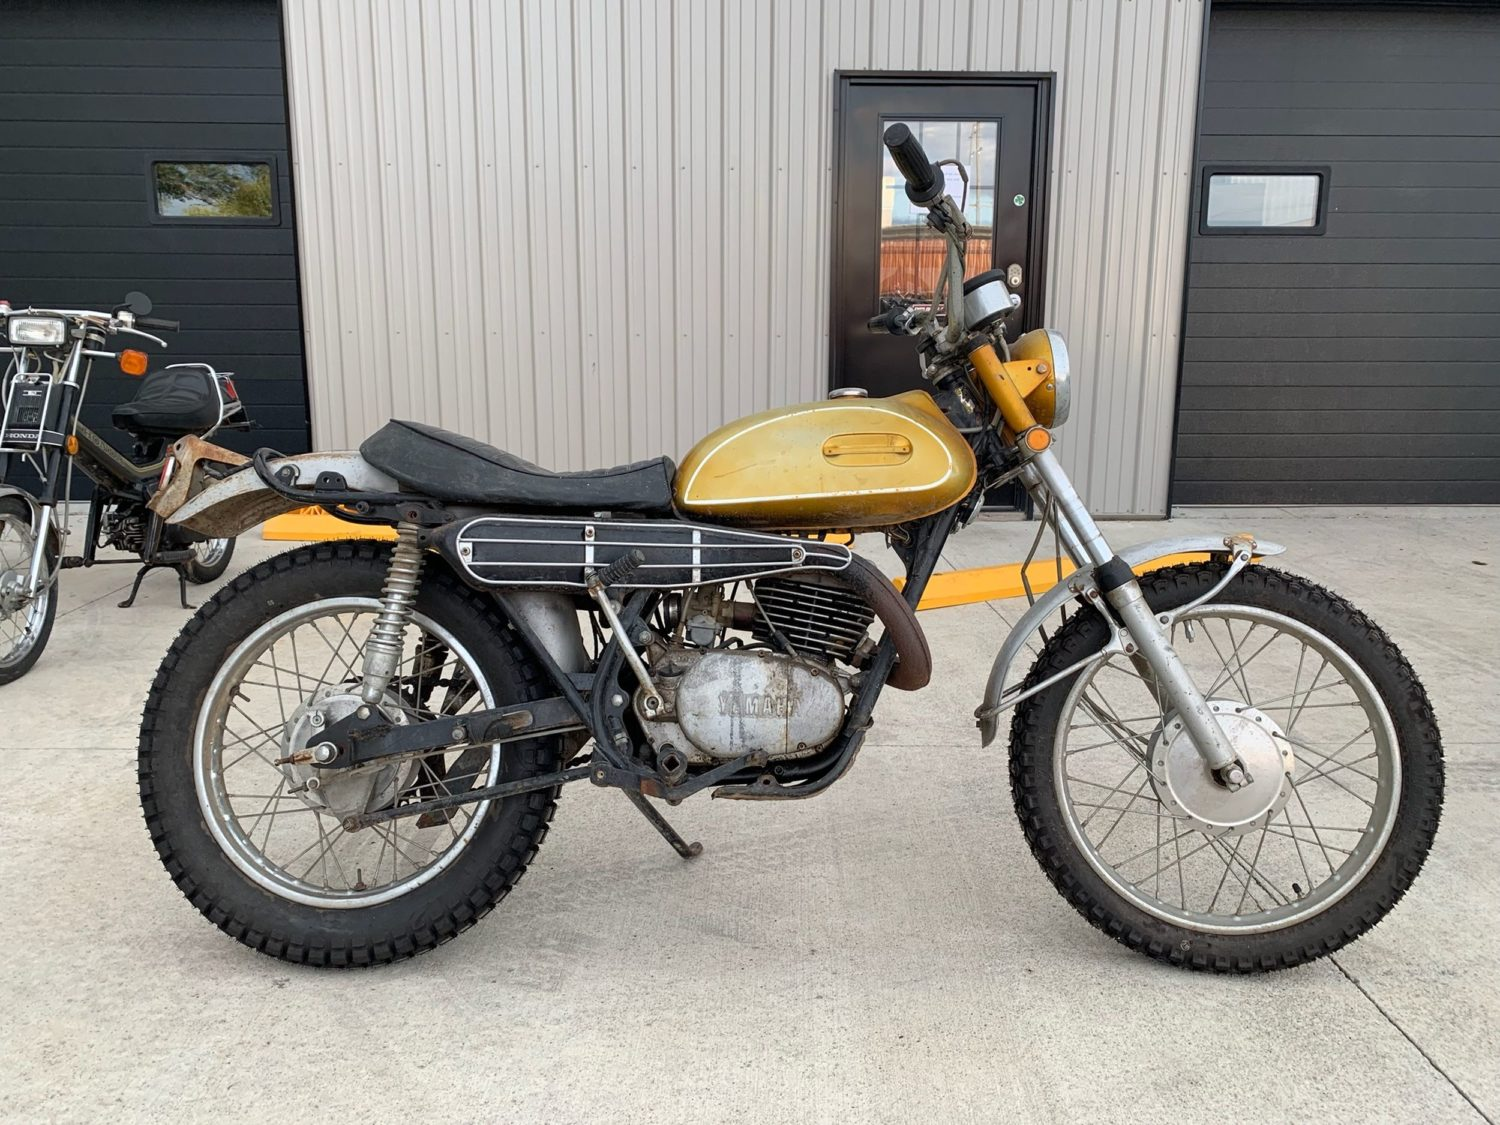 Motorcycle Consignment Auction- Classics & More! Baxter Cycle Open House Celebration! - image 7